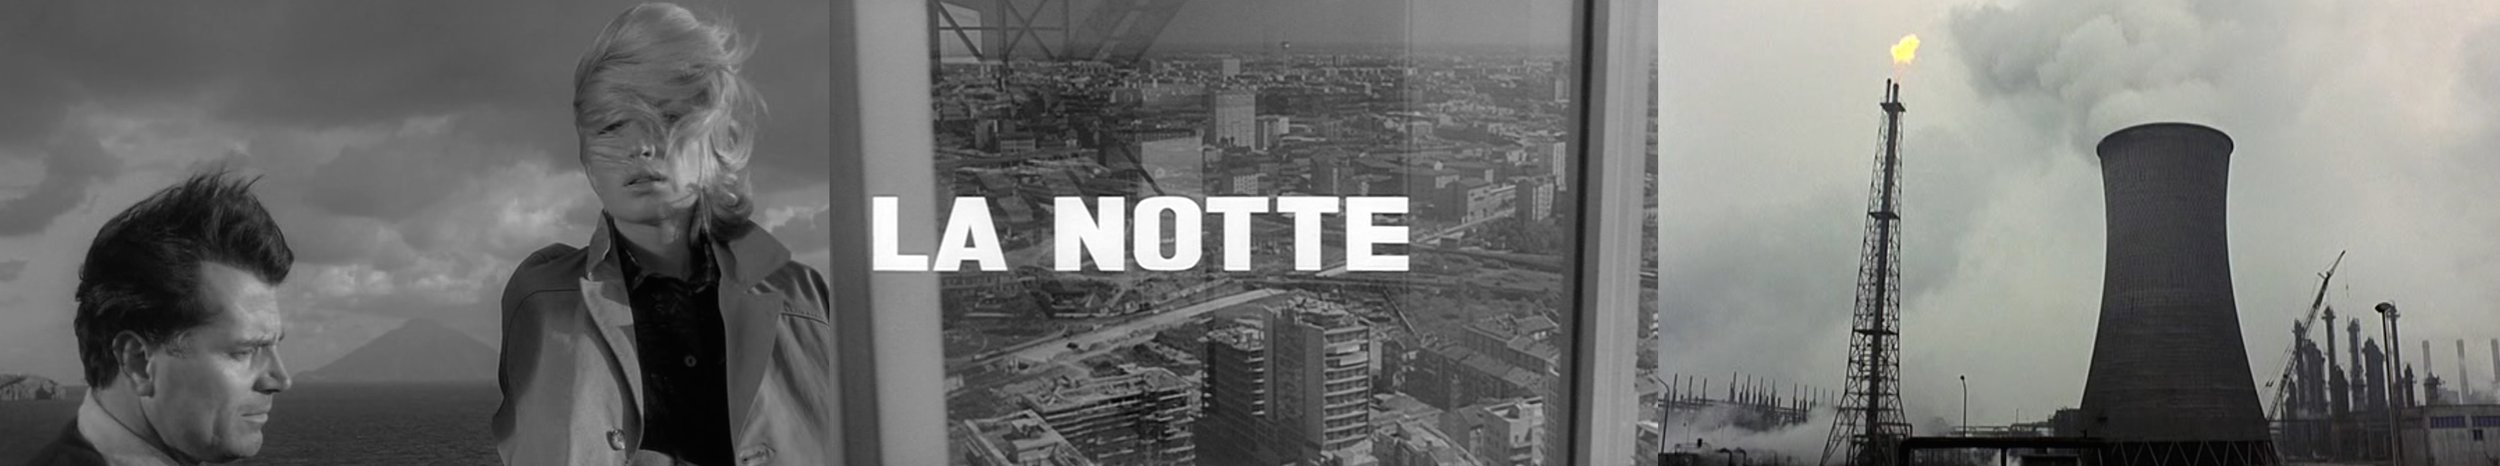 Strange, all pervasive soundscapes: (left) a violent, chaotic force of wind and crashing waves in  L'Avventura  [1960], (centre) an eerie combination of city sounds and electronic tones in the opening title sequence to  La Notte  [1961] and (right) Vittorio Gelmetti's electronic treatment for the soundtrack of  Il Deserto Rosso  [1964].